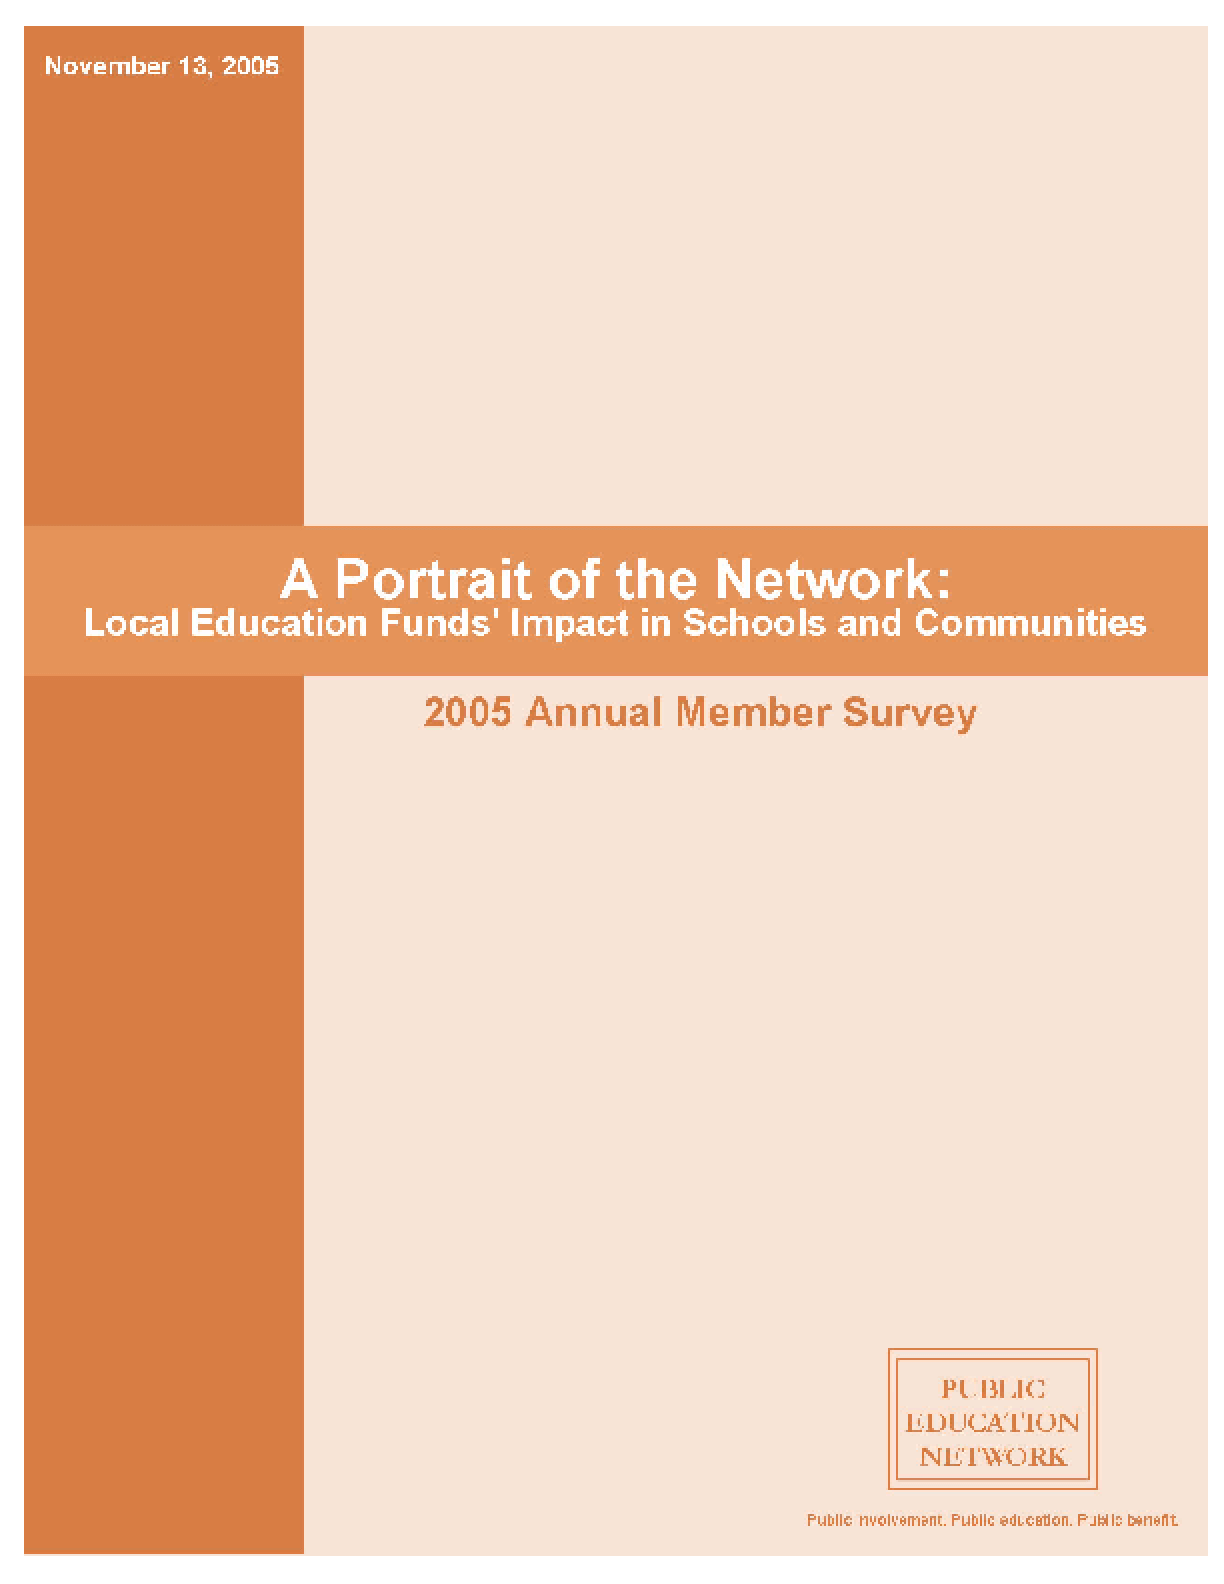 A Portrait of the Network Local Education Funds' Impact in Schools and Communities, 2005 Annual Member Survey